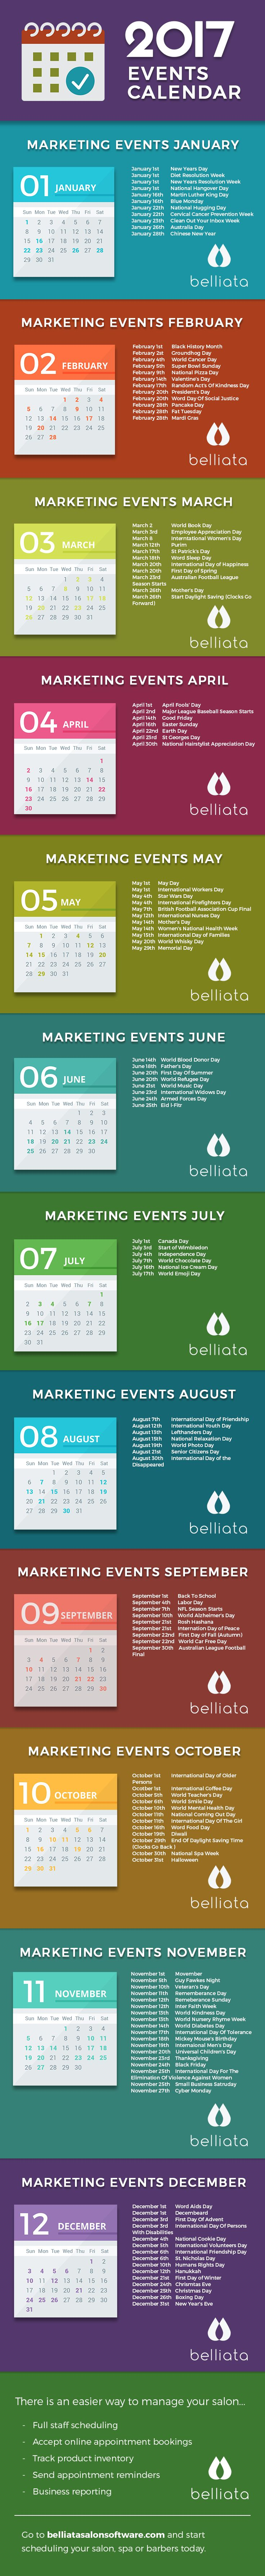 Is your salon marketing plan 2017 ready to go? Belliata Salon Software have created a marketing calendar to help you drive new